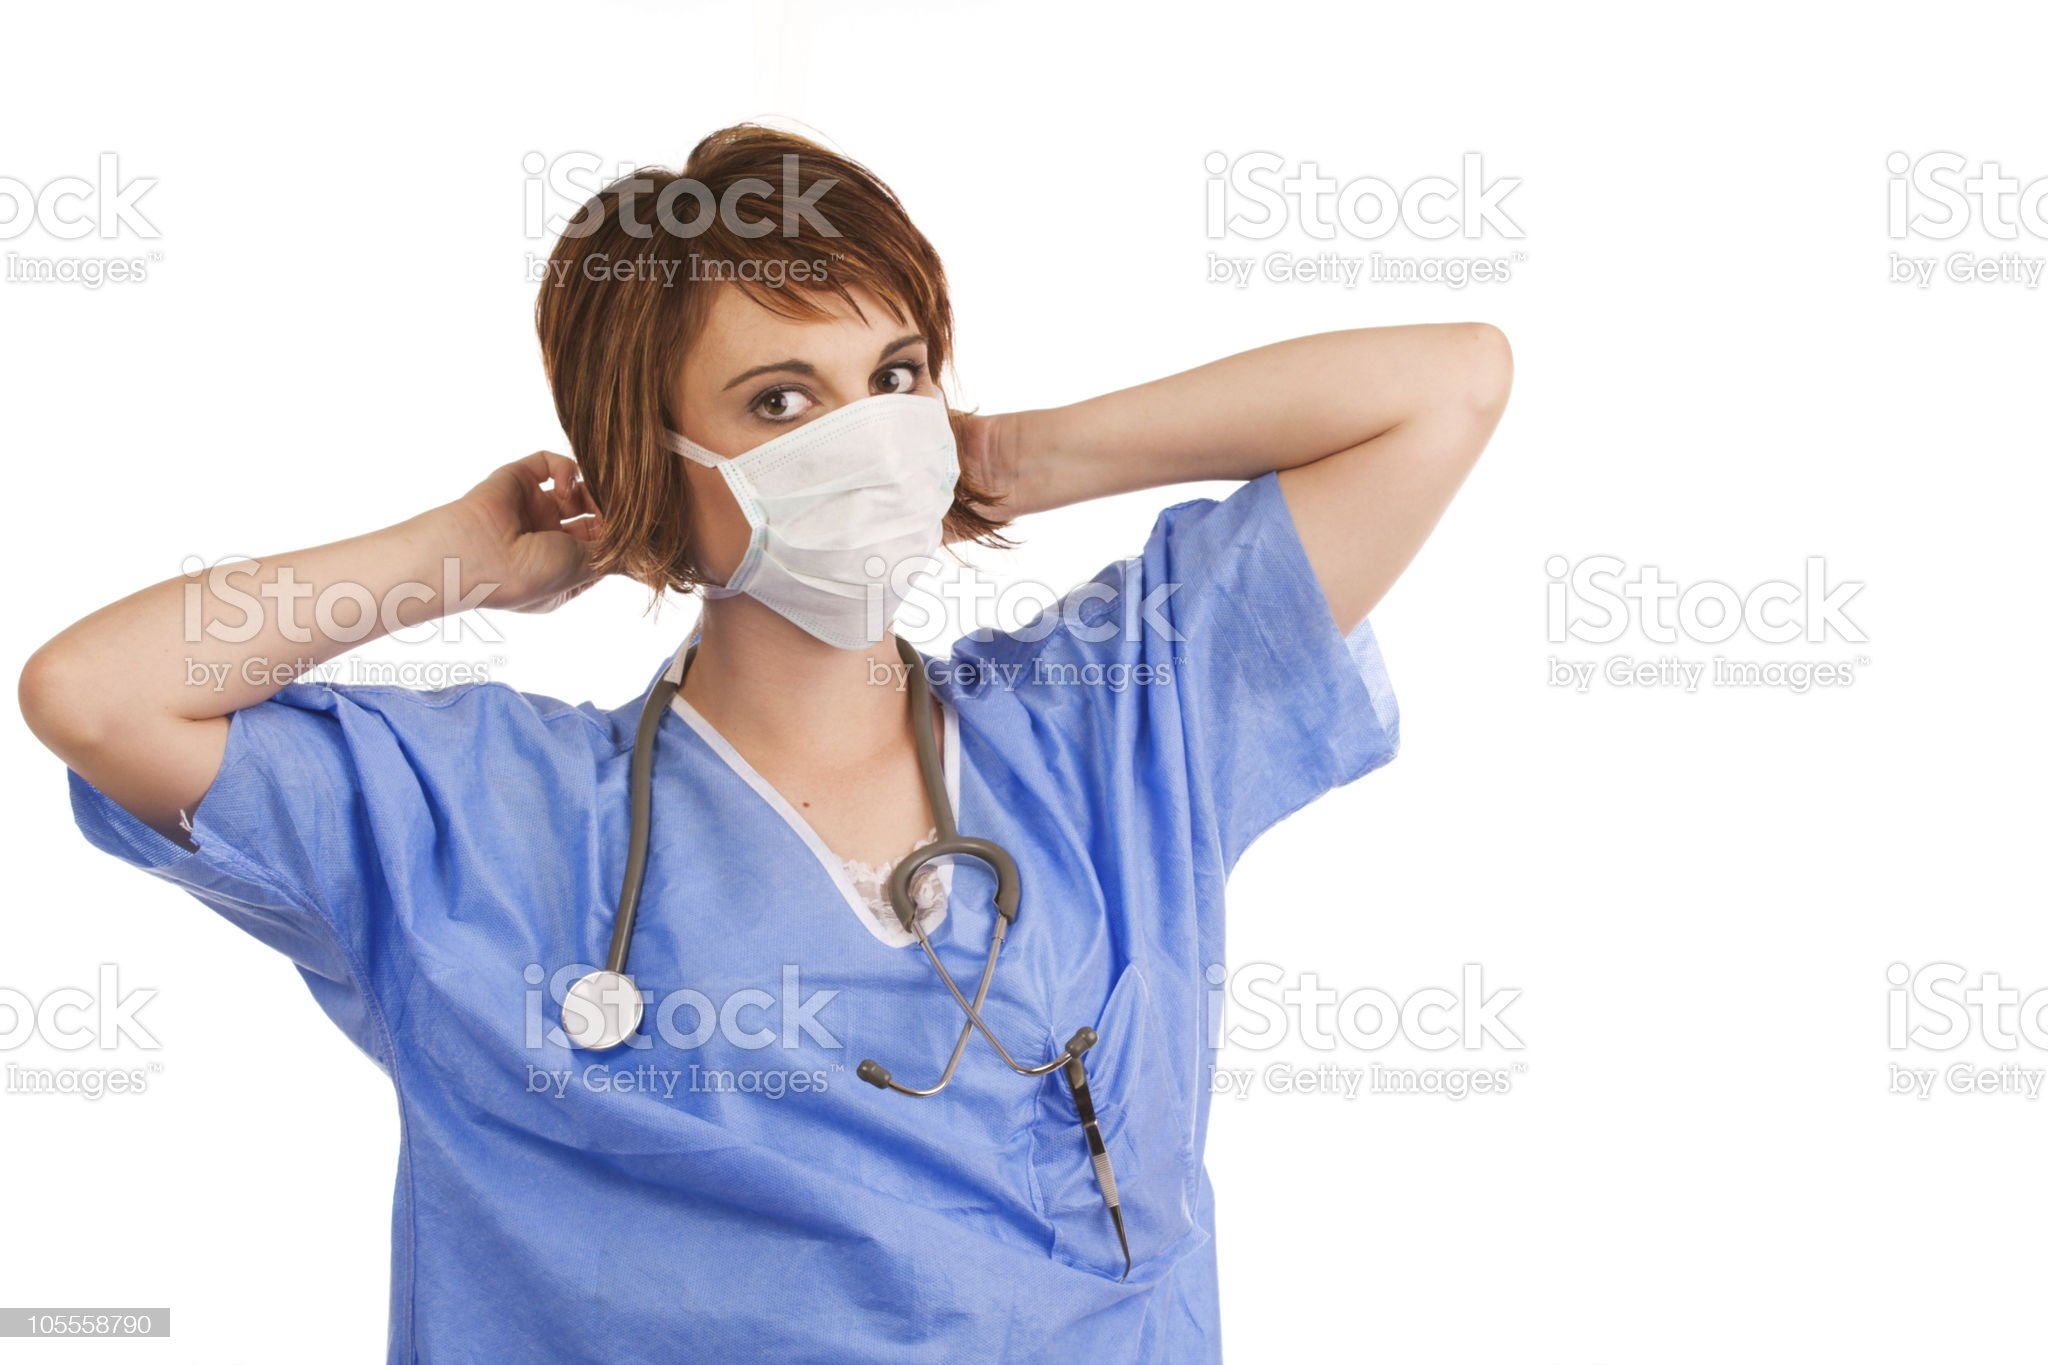 Young adult female nurse prepping for surgery royalty-free stock photo